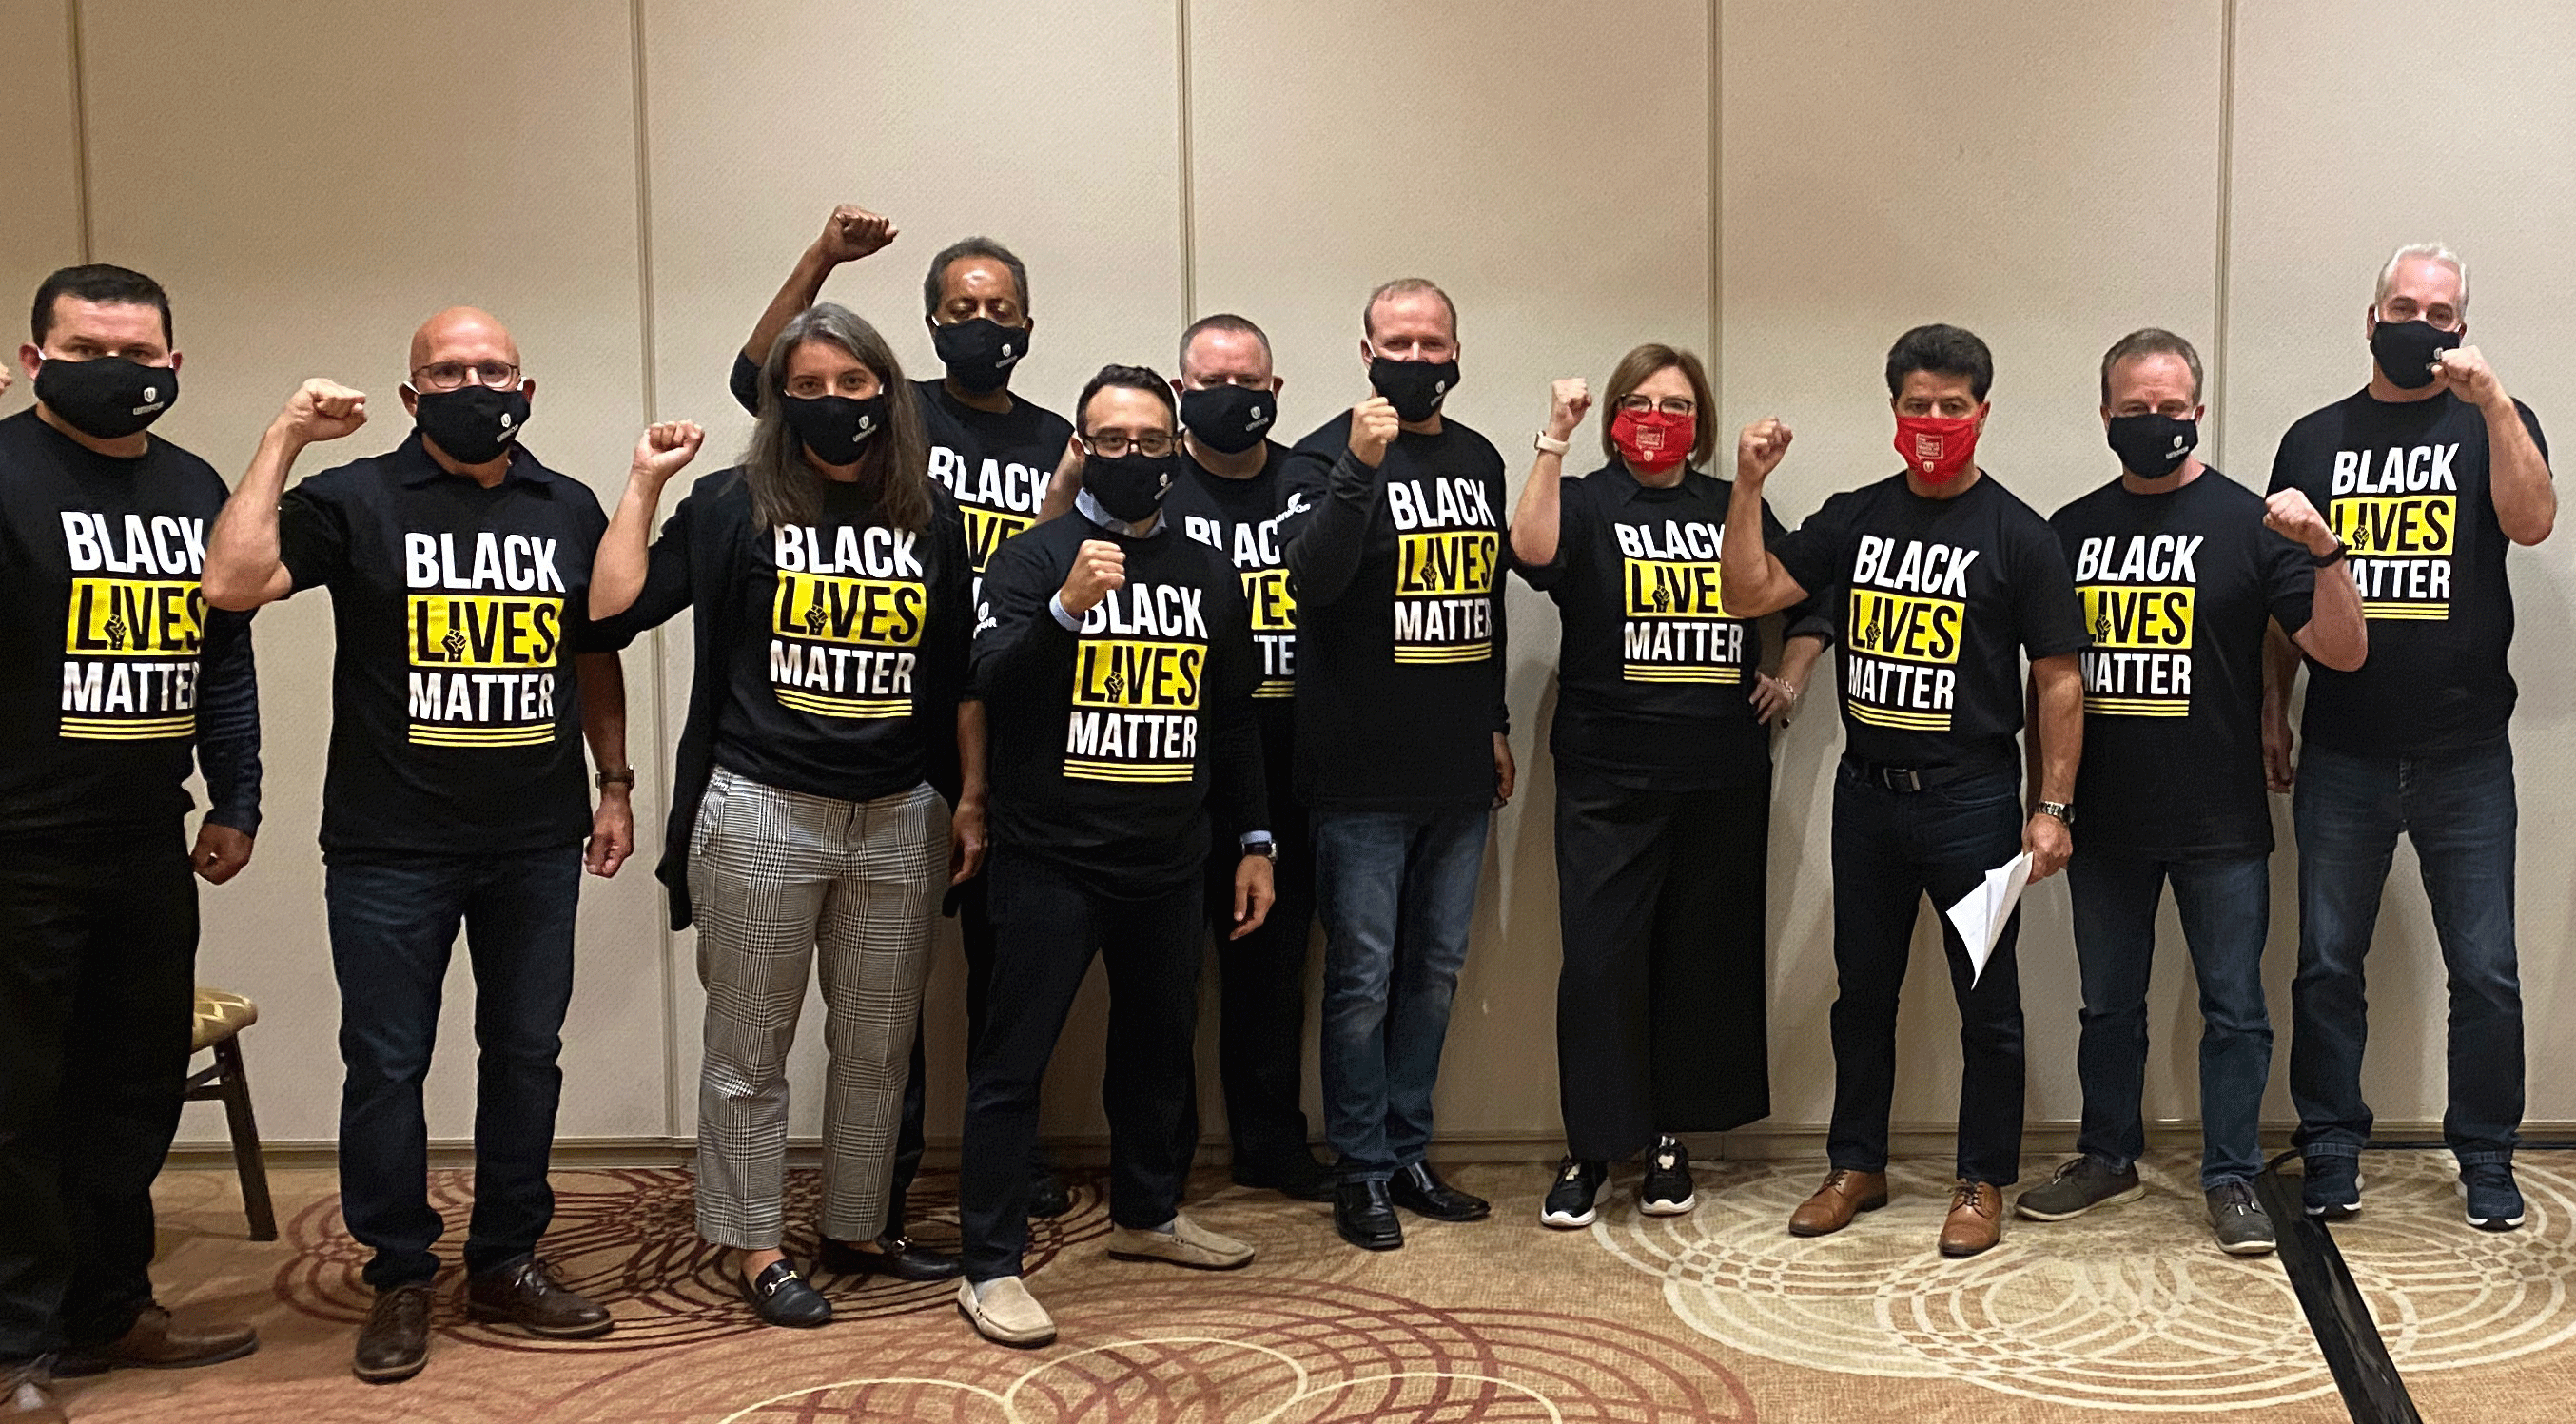 Unifor leaders and members wearing Black Lives Matter T-shirts raise fists.